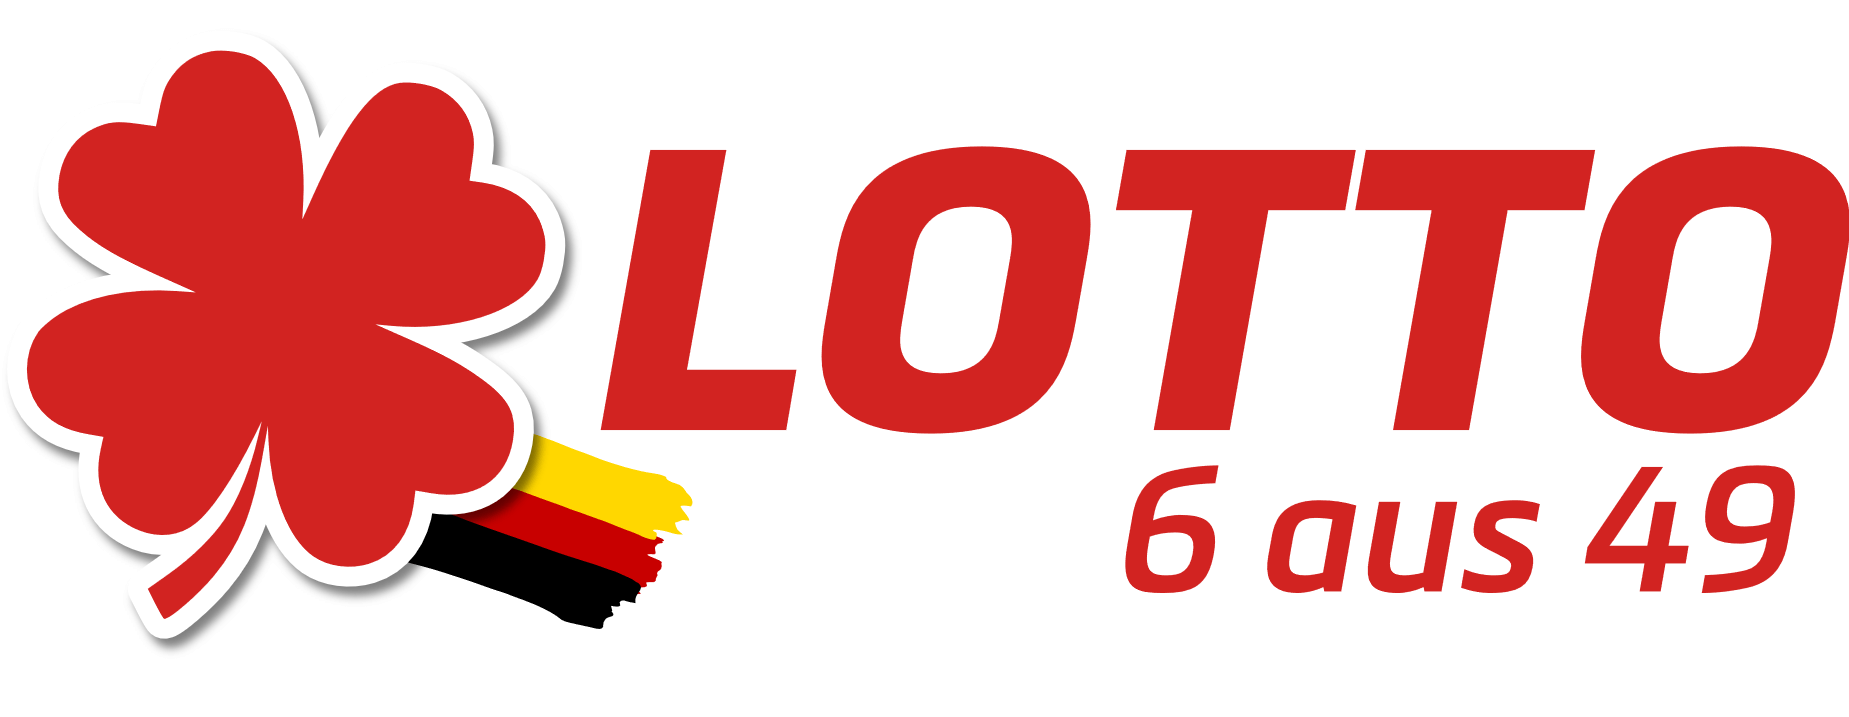 6 49 Germany Lotto